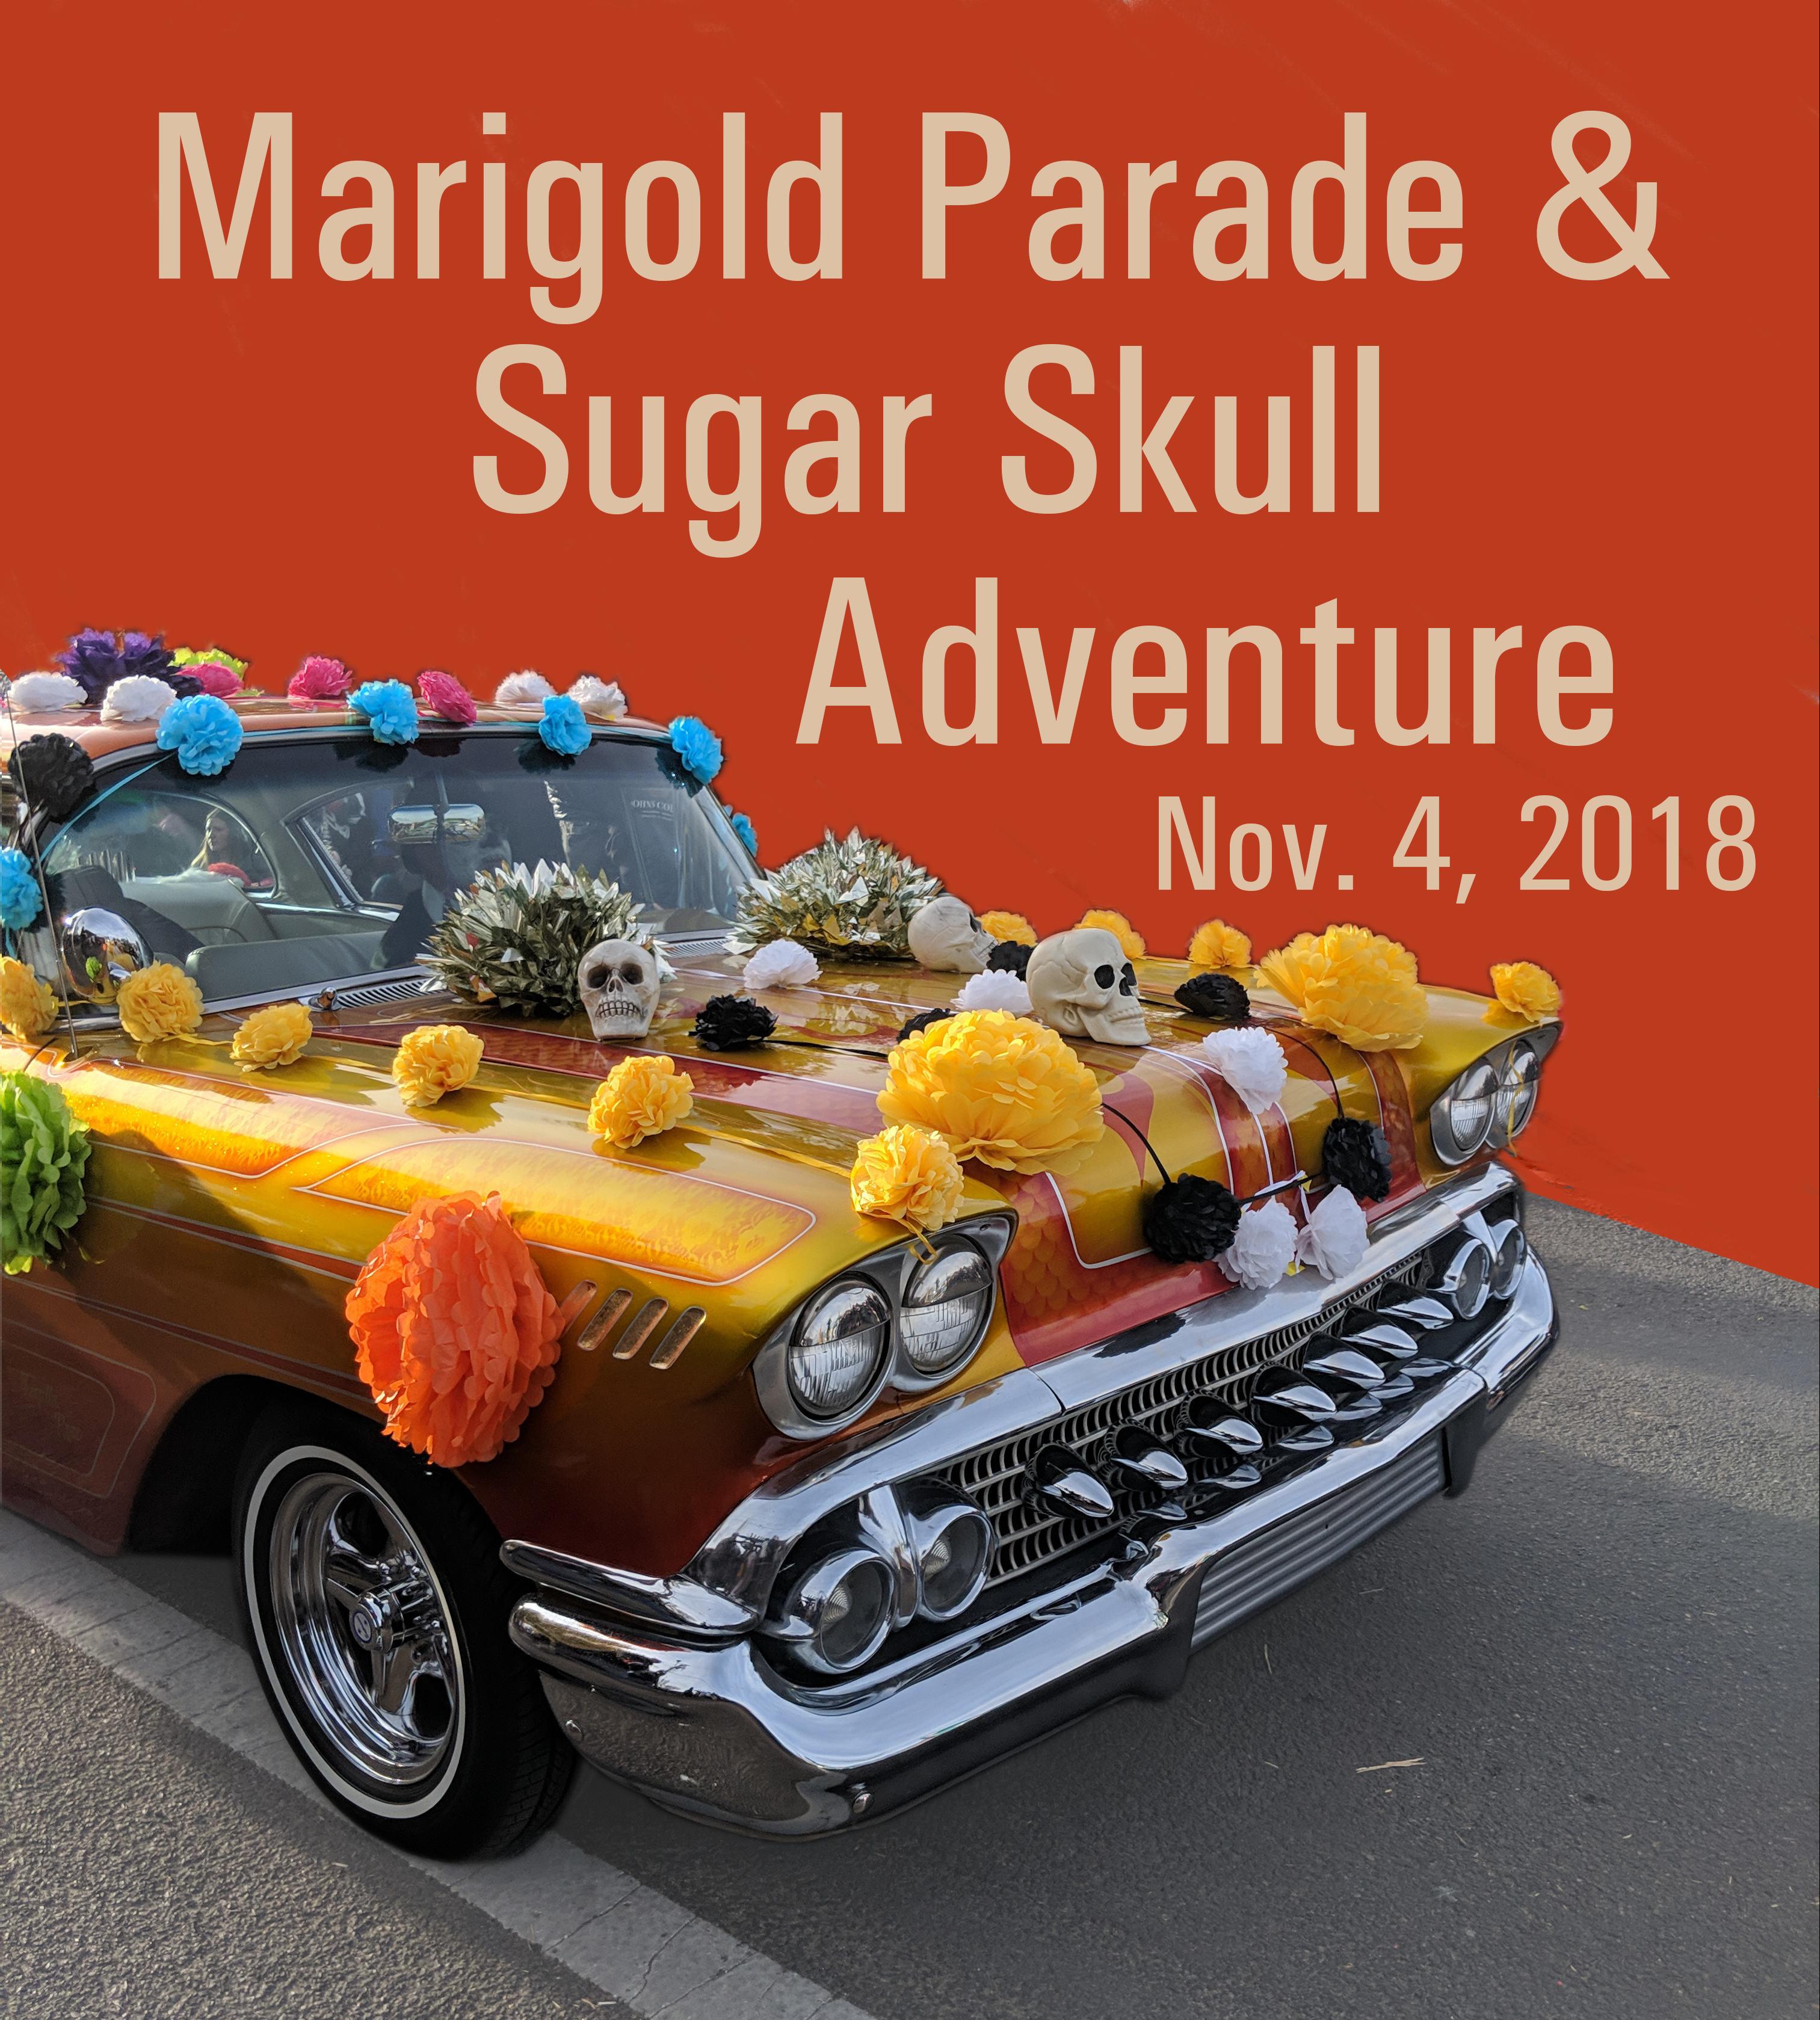 Marigold Parade & Sugar Skull Adventure